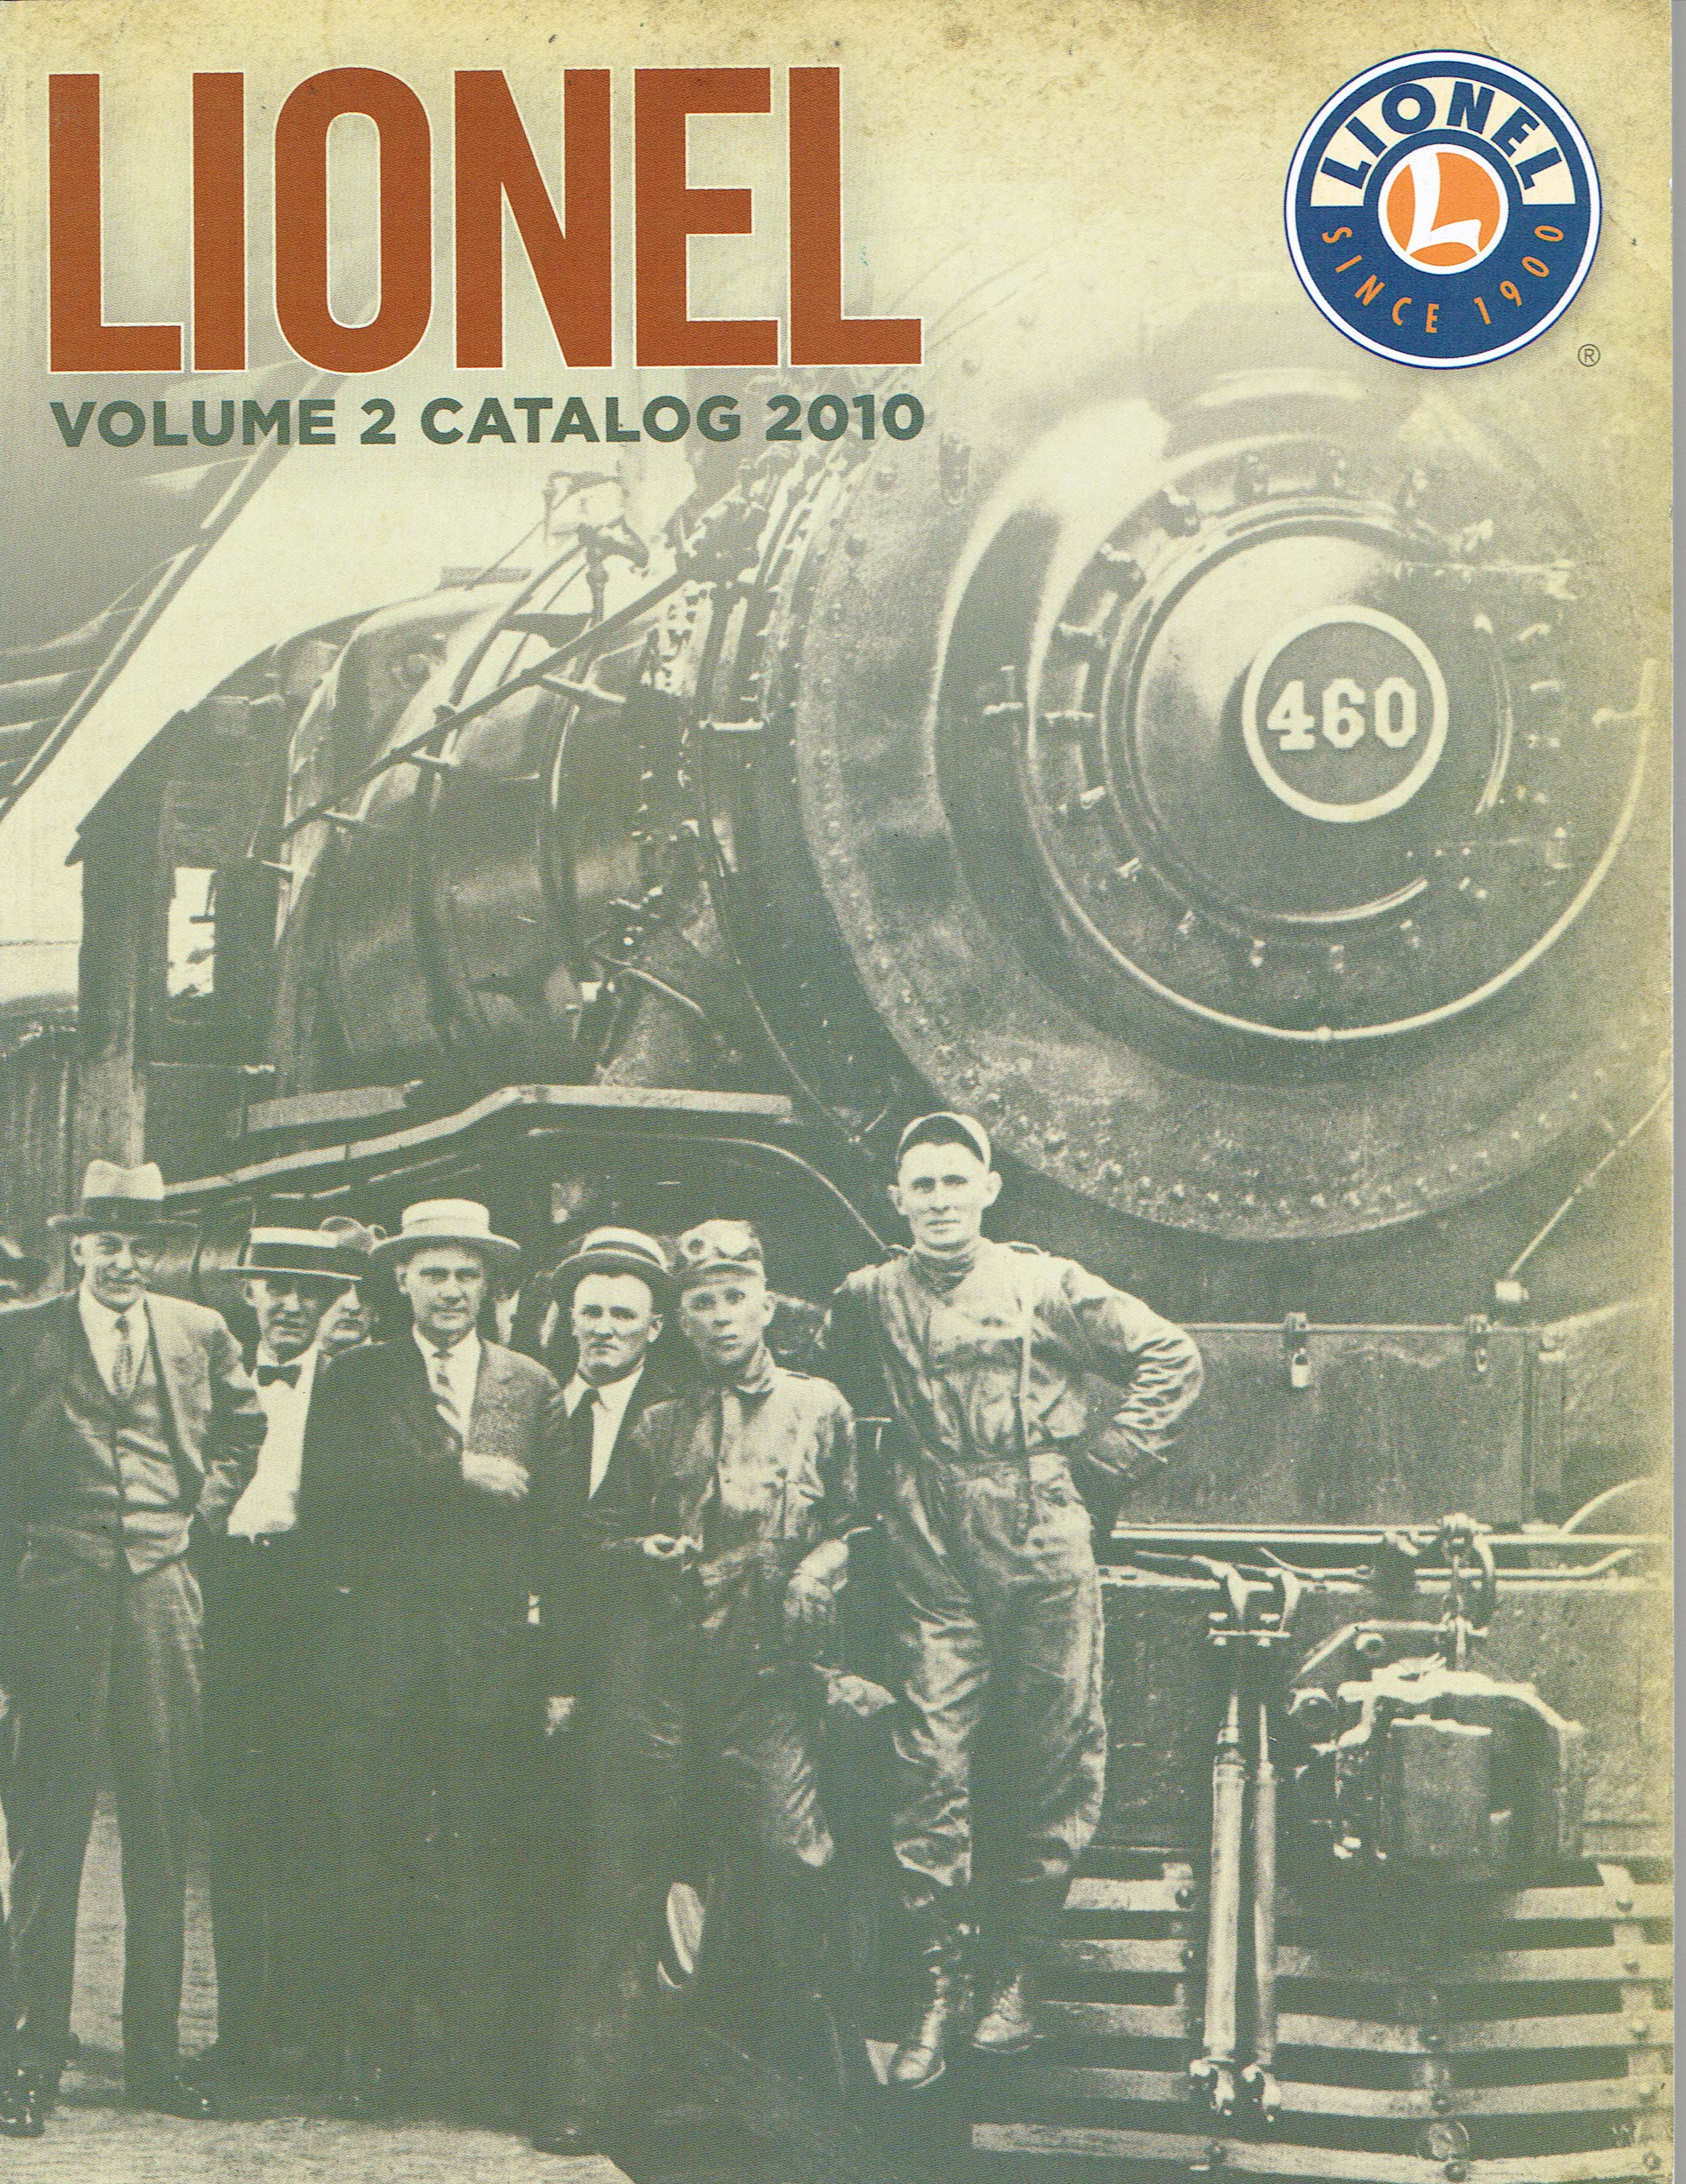 Lionel 2010 Volume 2 Catalog image